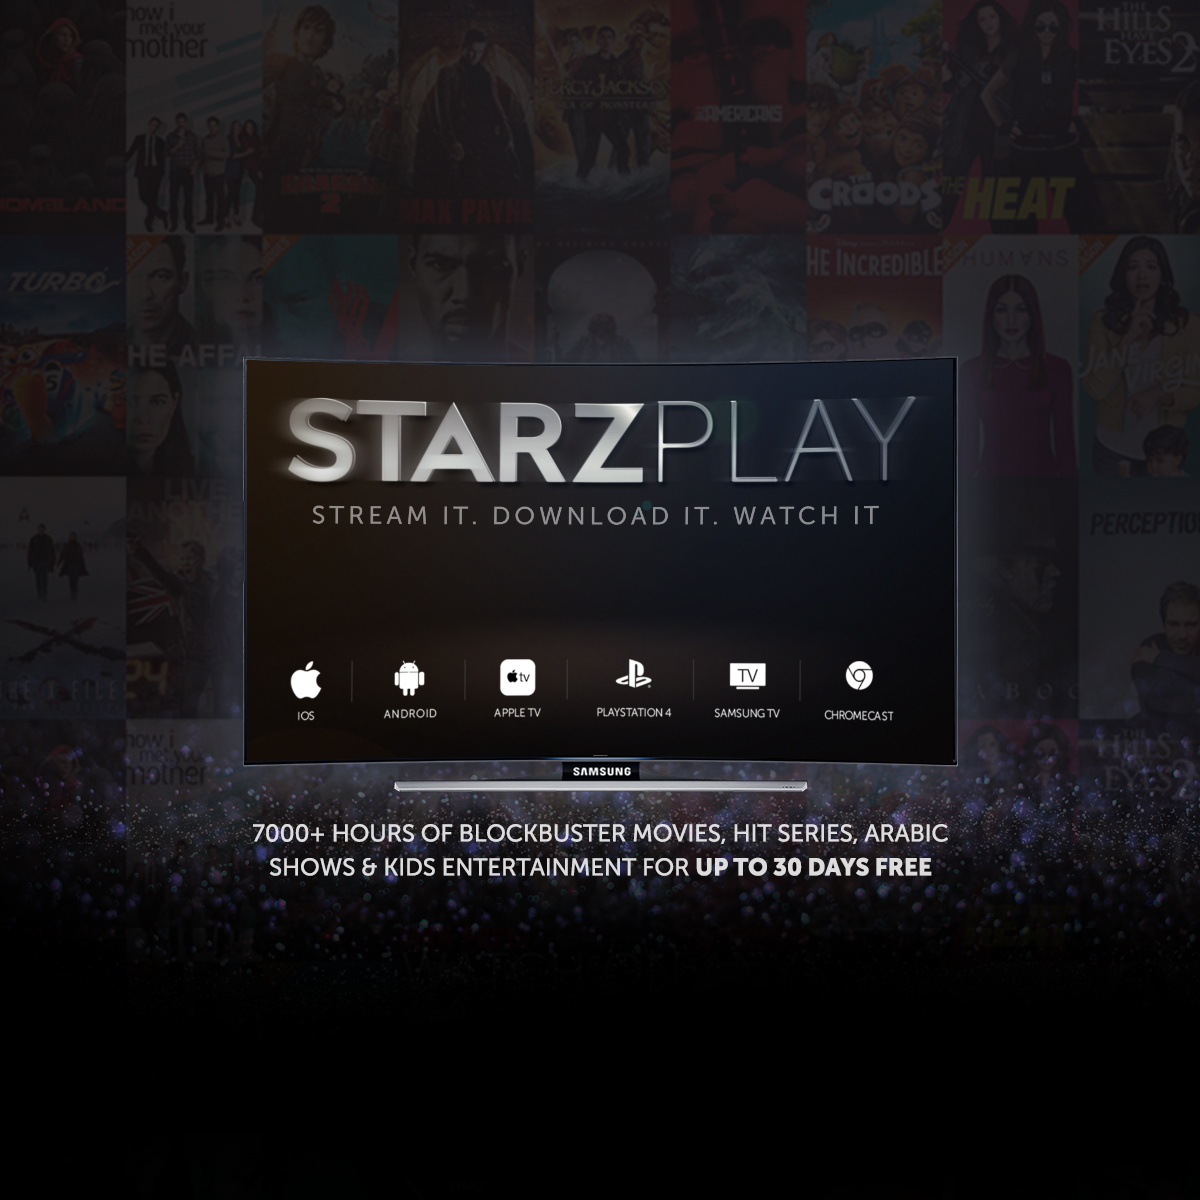 STARZ PLAY by Cinepax | Watch Featured Movies and Original